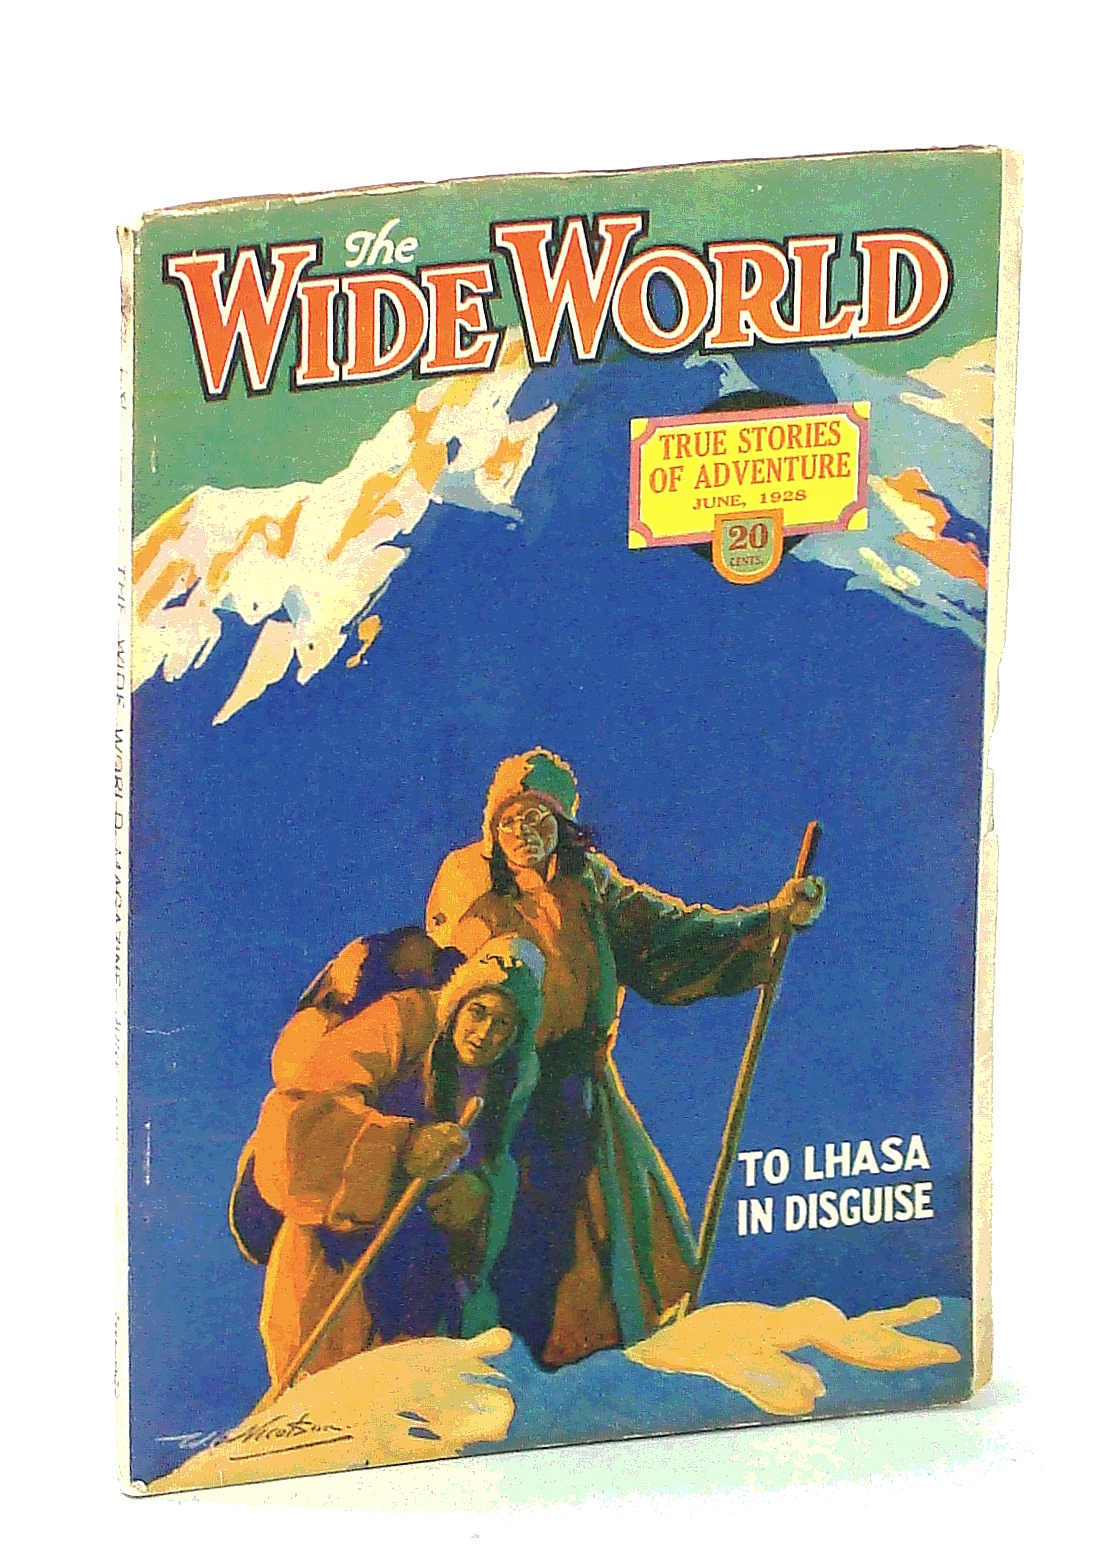 Image for The Wide World Magazine - True Stories of Adventure, June 1928, Vol. LXI, No. 362: Through the Guadalupe Wilderness / To Lhasa in Disguise